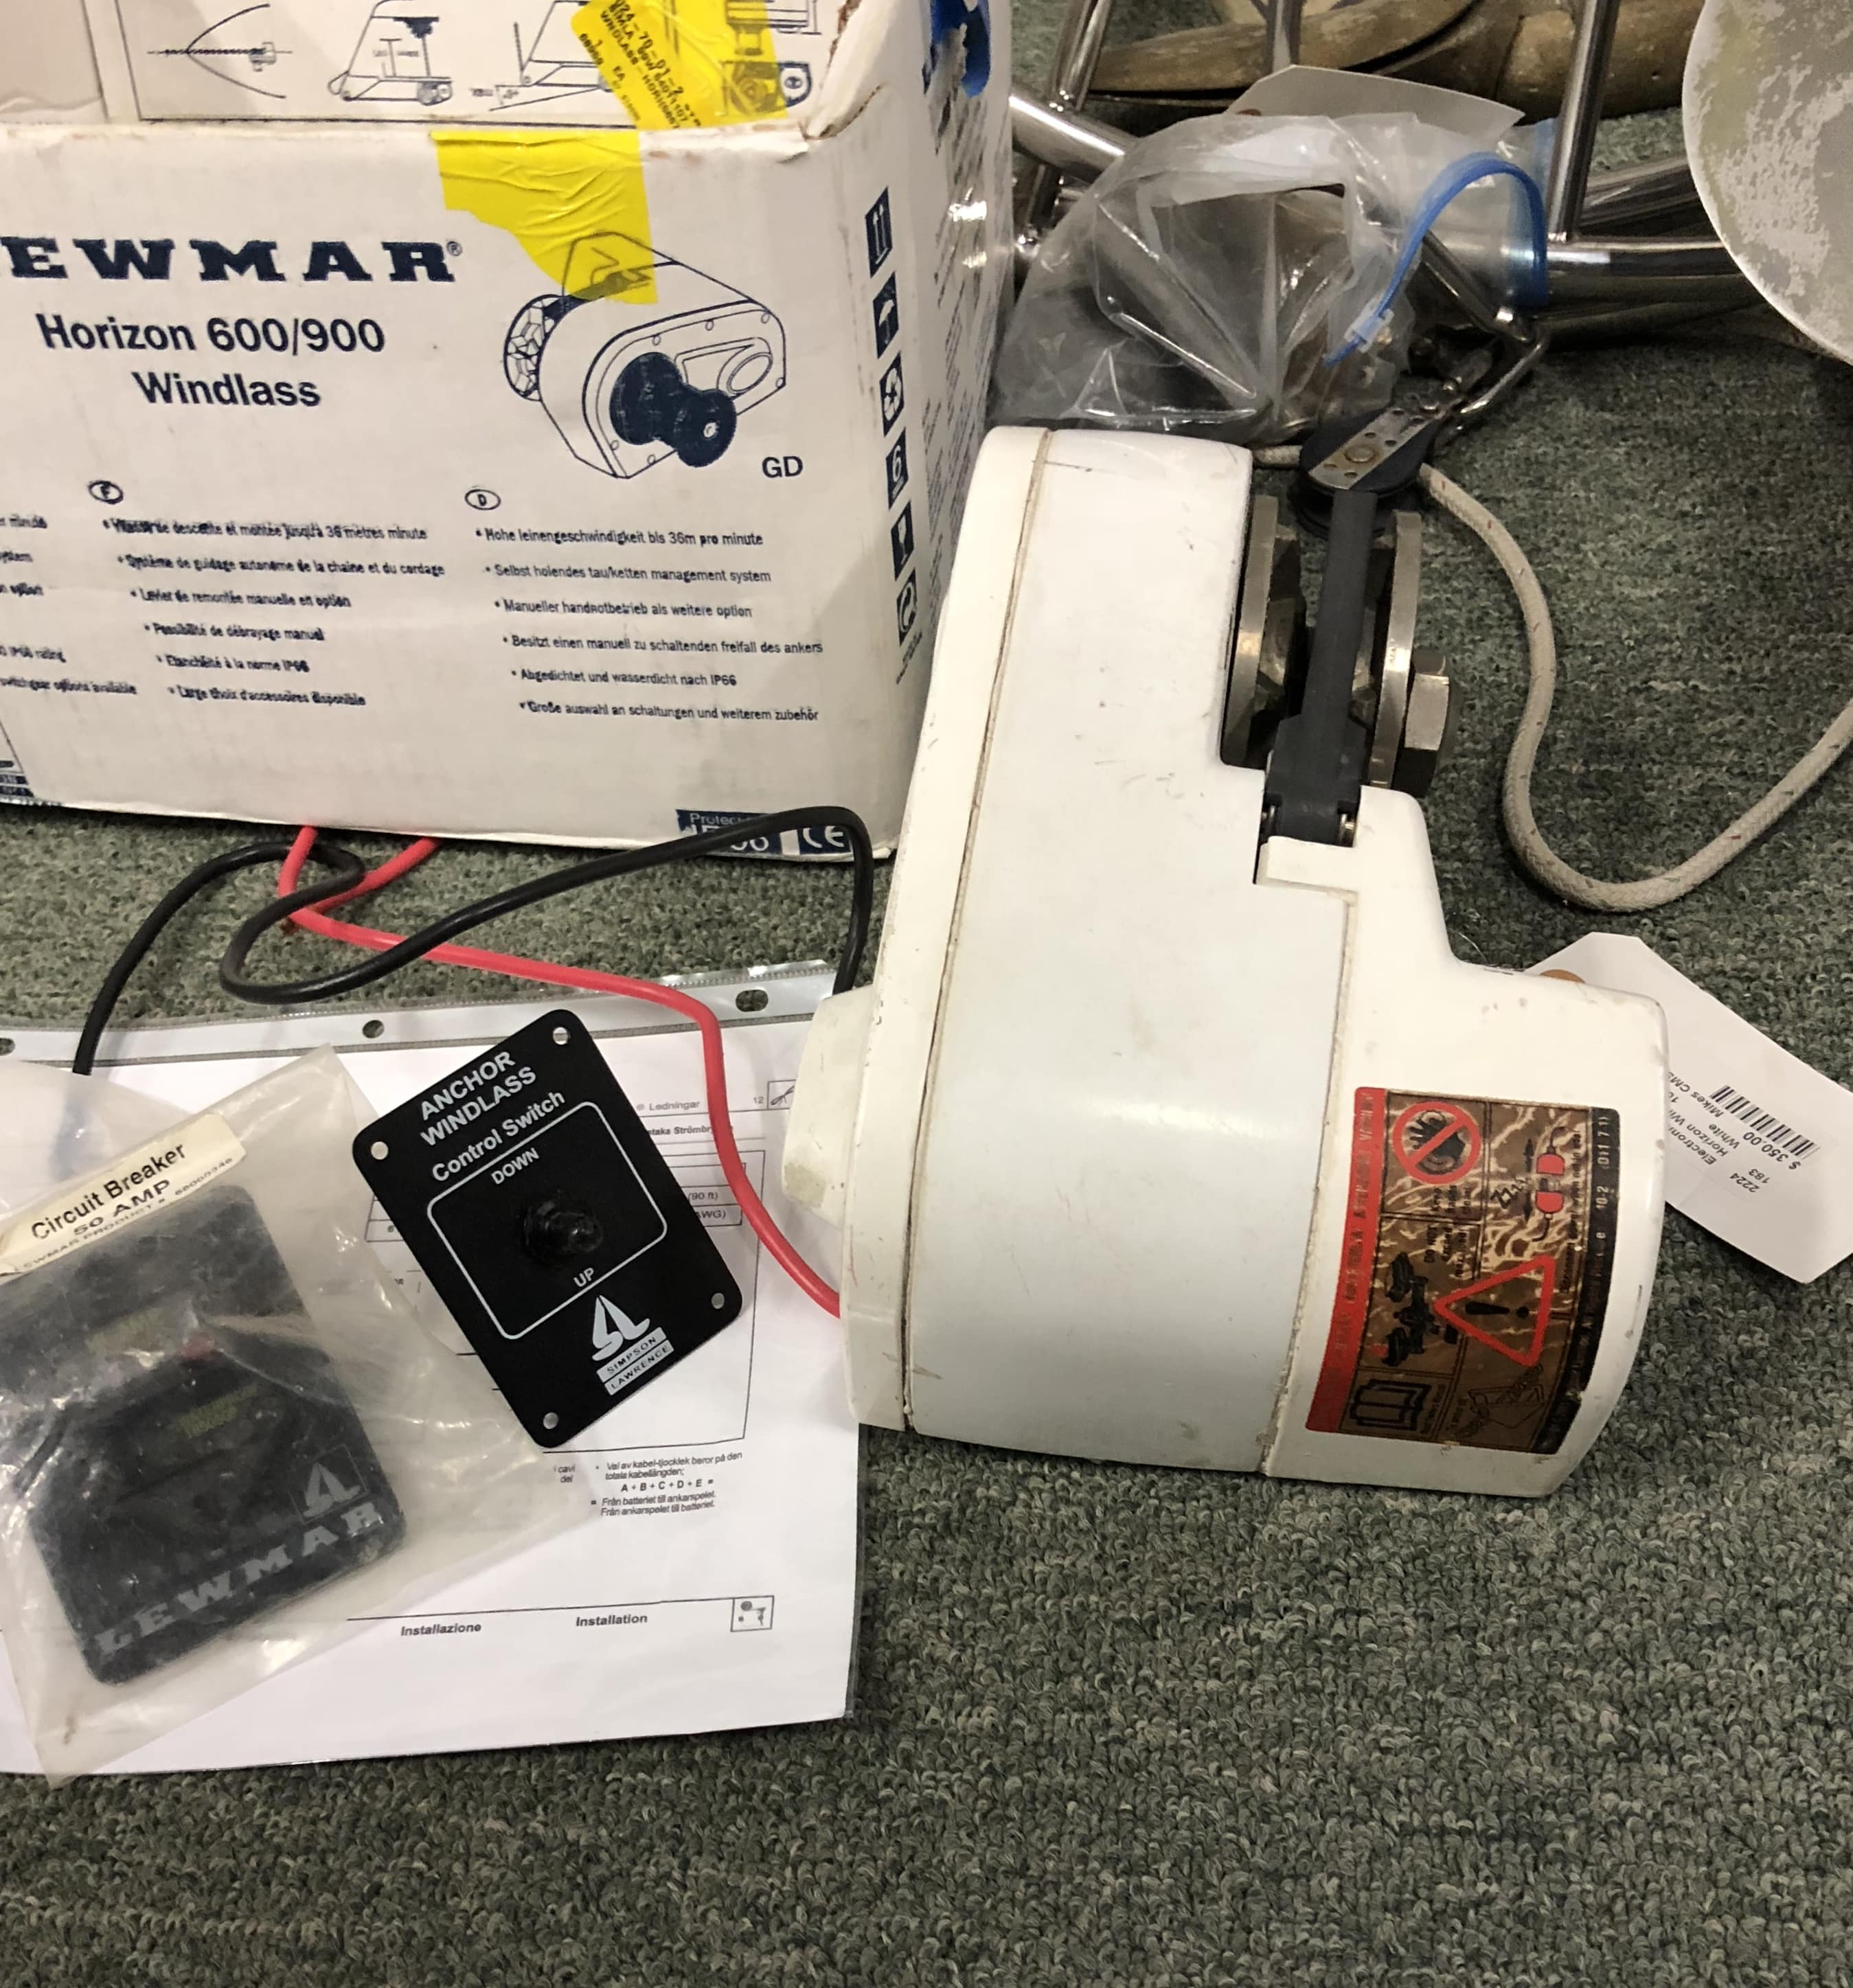 Lewmar Horizon 600 900 Windlass With Control Switch And